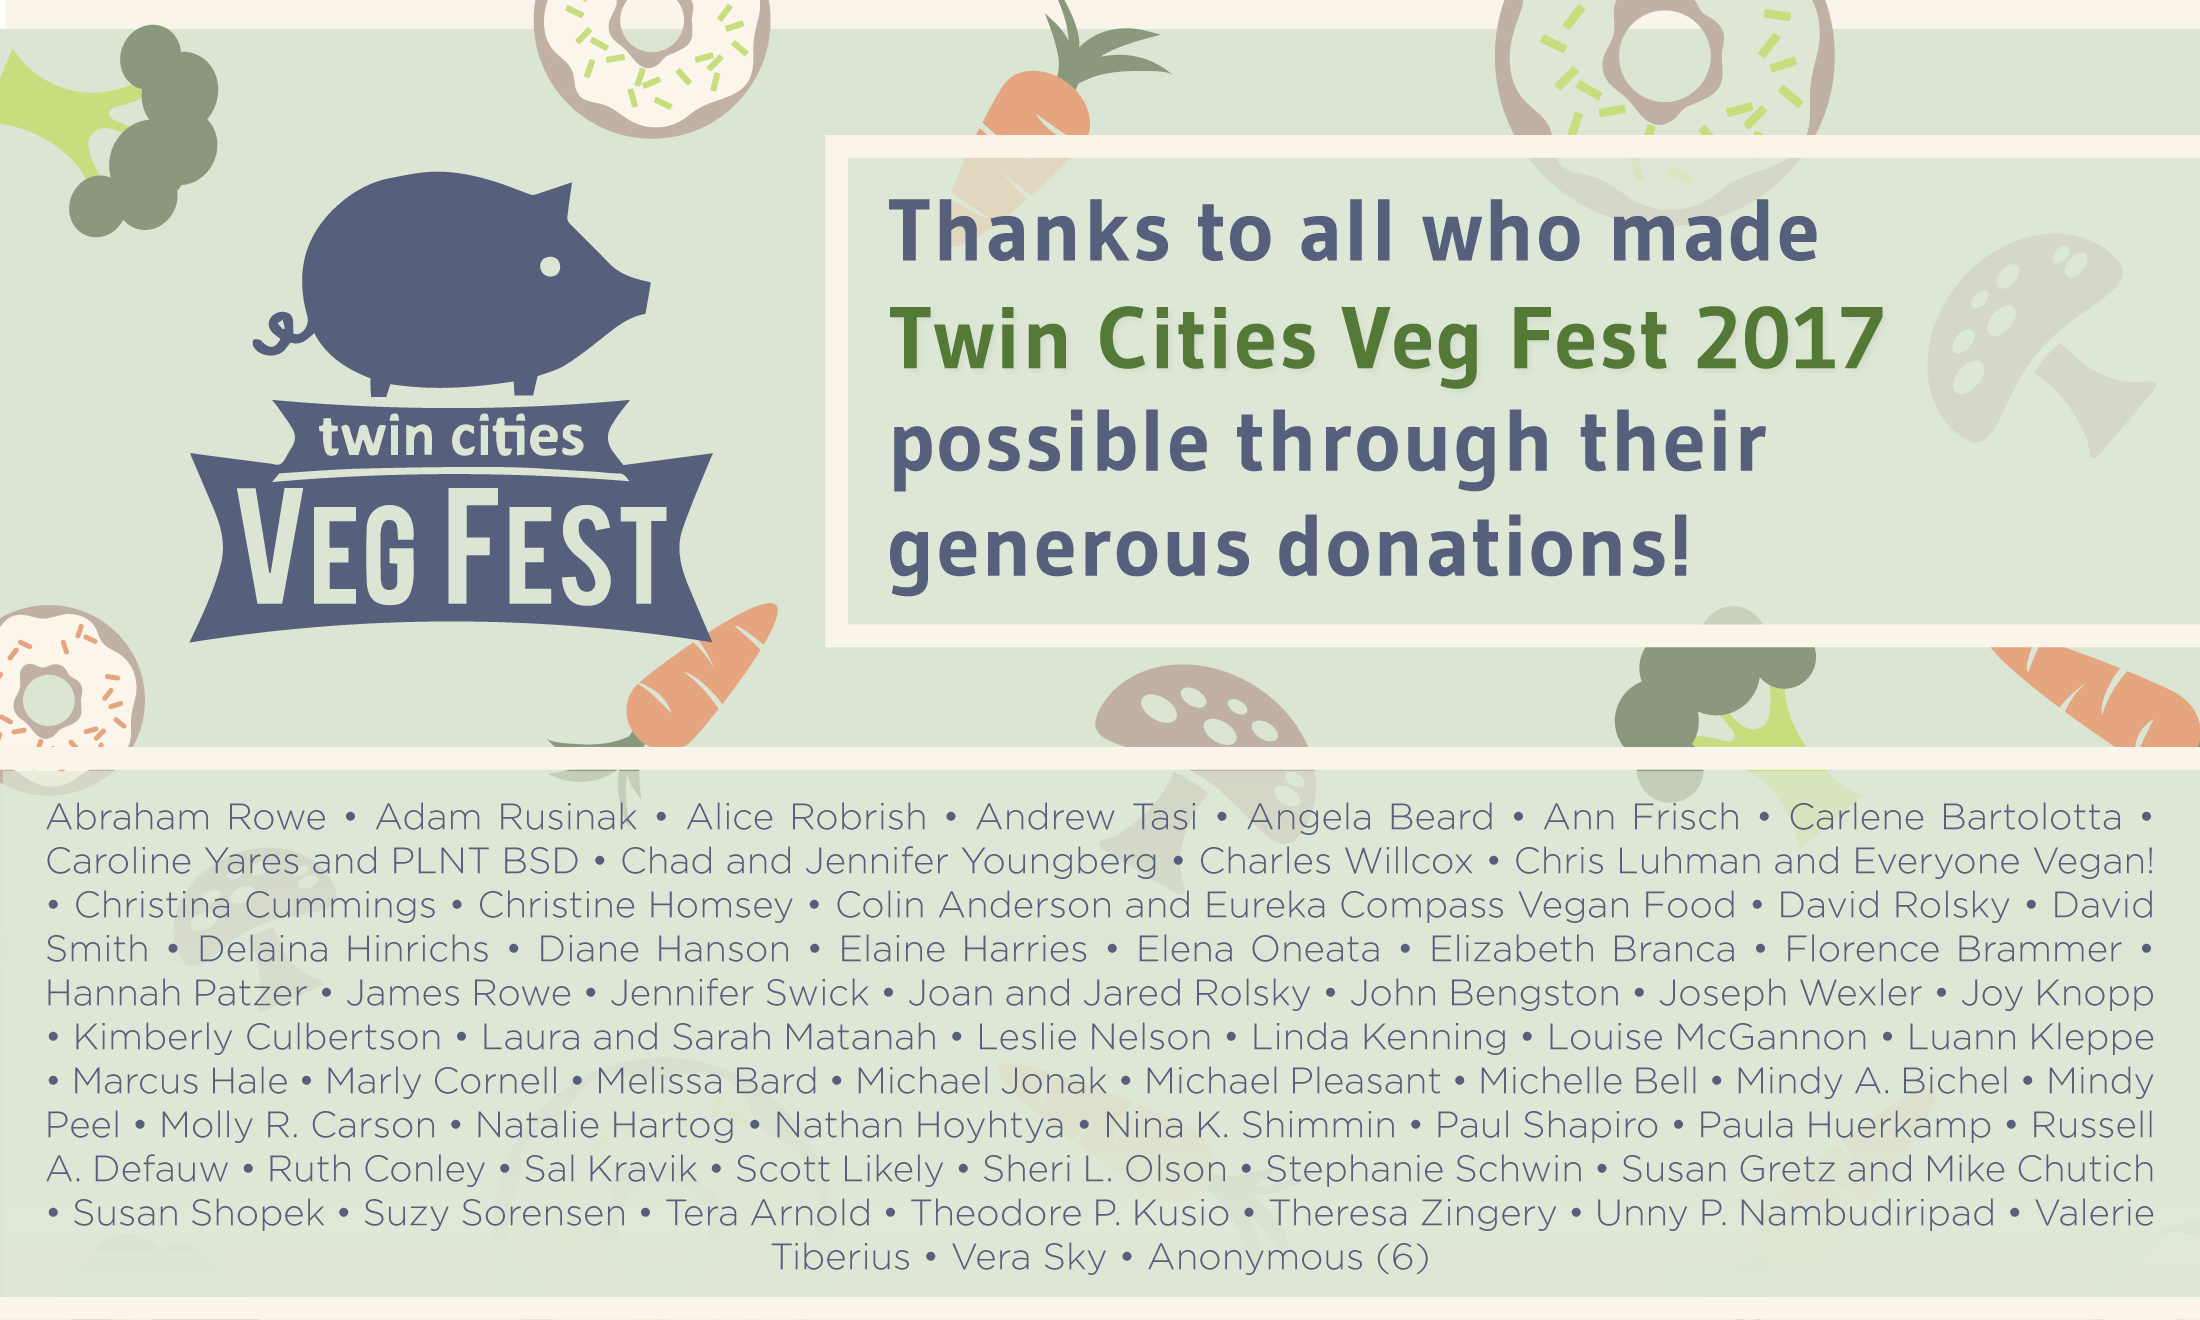 For  Twin Cities Veg Fest . Large (5ft x 3ft) banner honouring donors, to be hung up at the event.